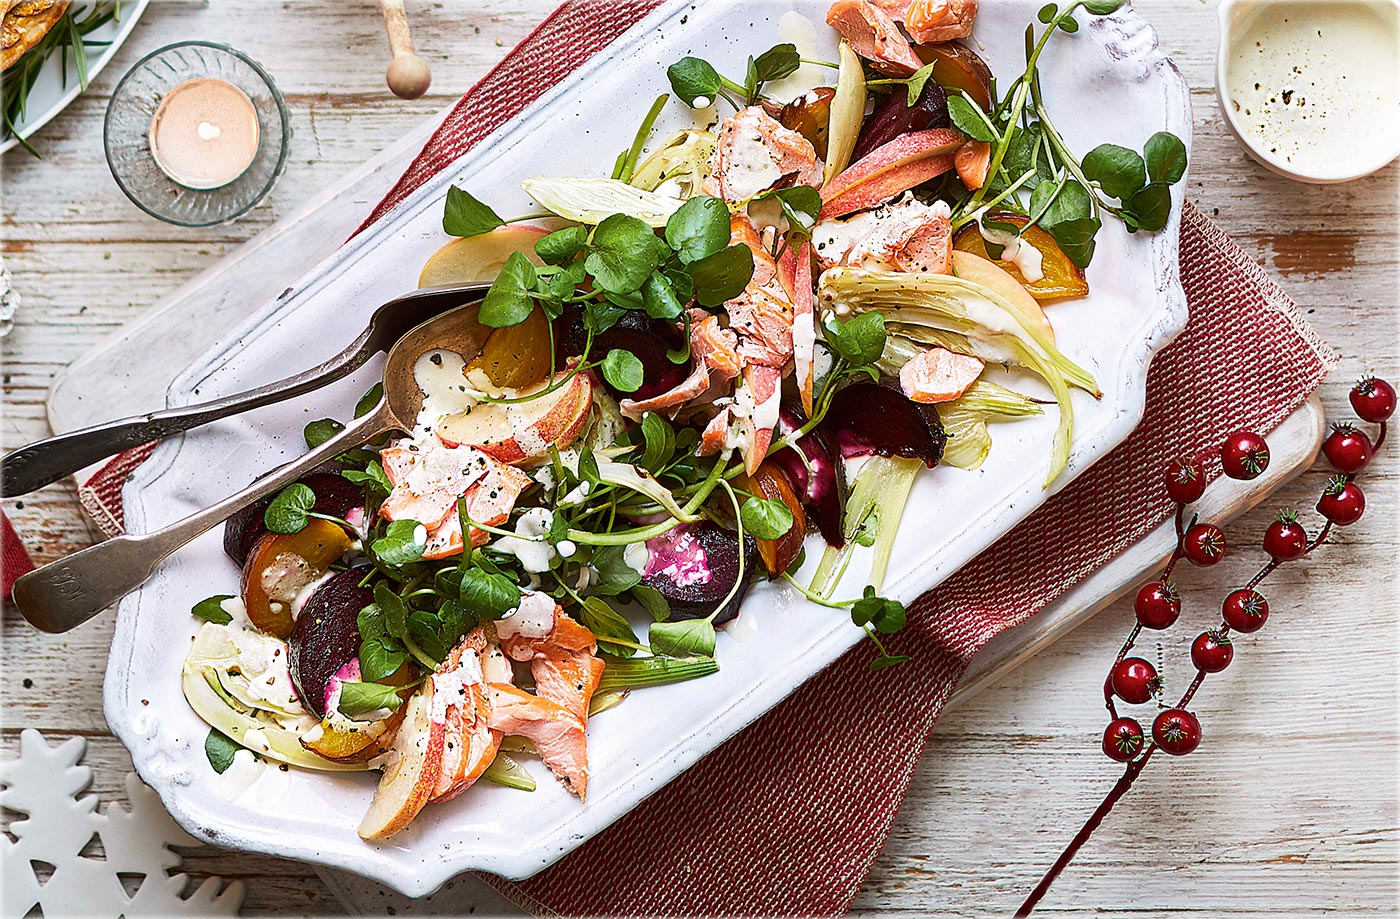 Roasted beetroot, fennel and apple salad with hot smoked salmon recipe